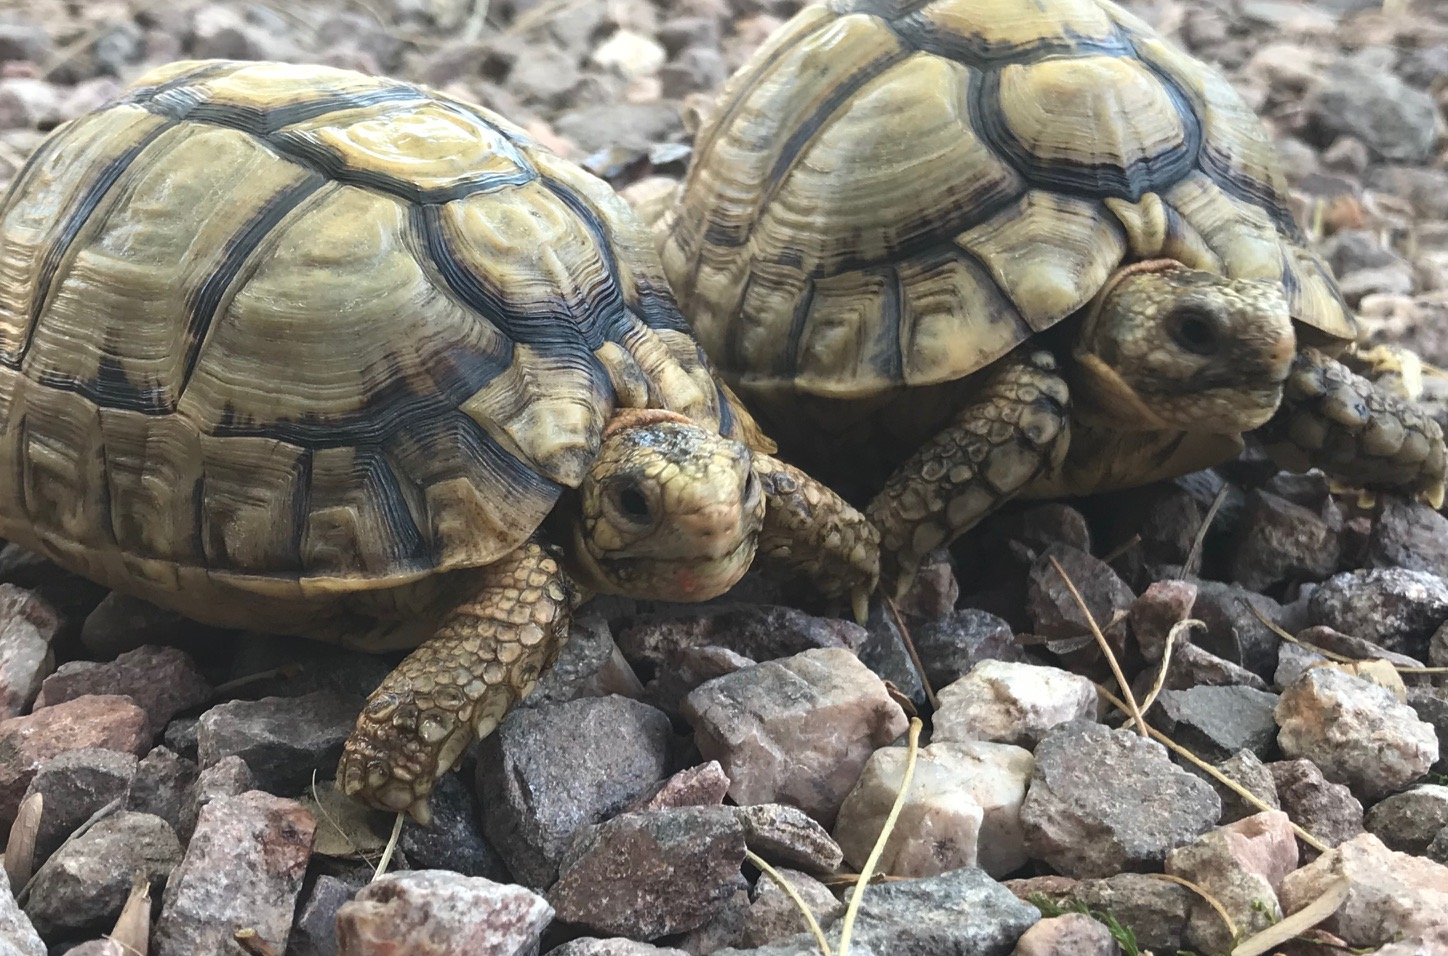 Egyptian tortoise breeder | Egyptian tortoises for sale | Small Tortoises for sale